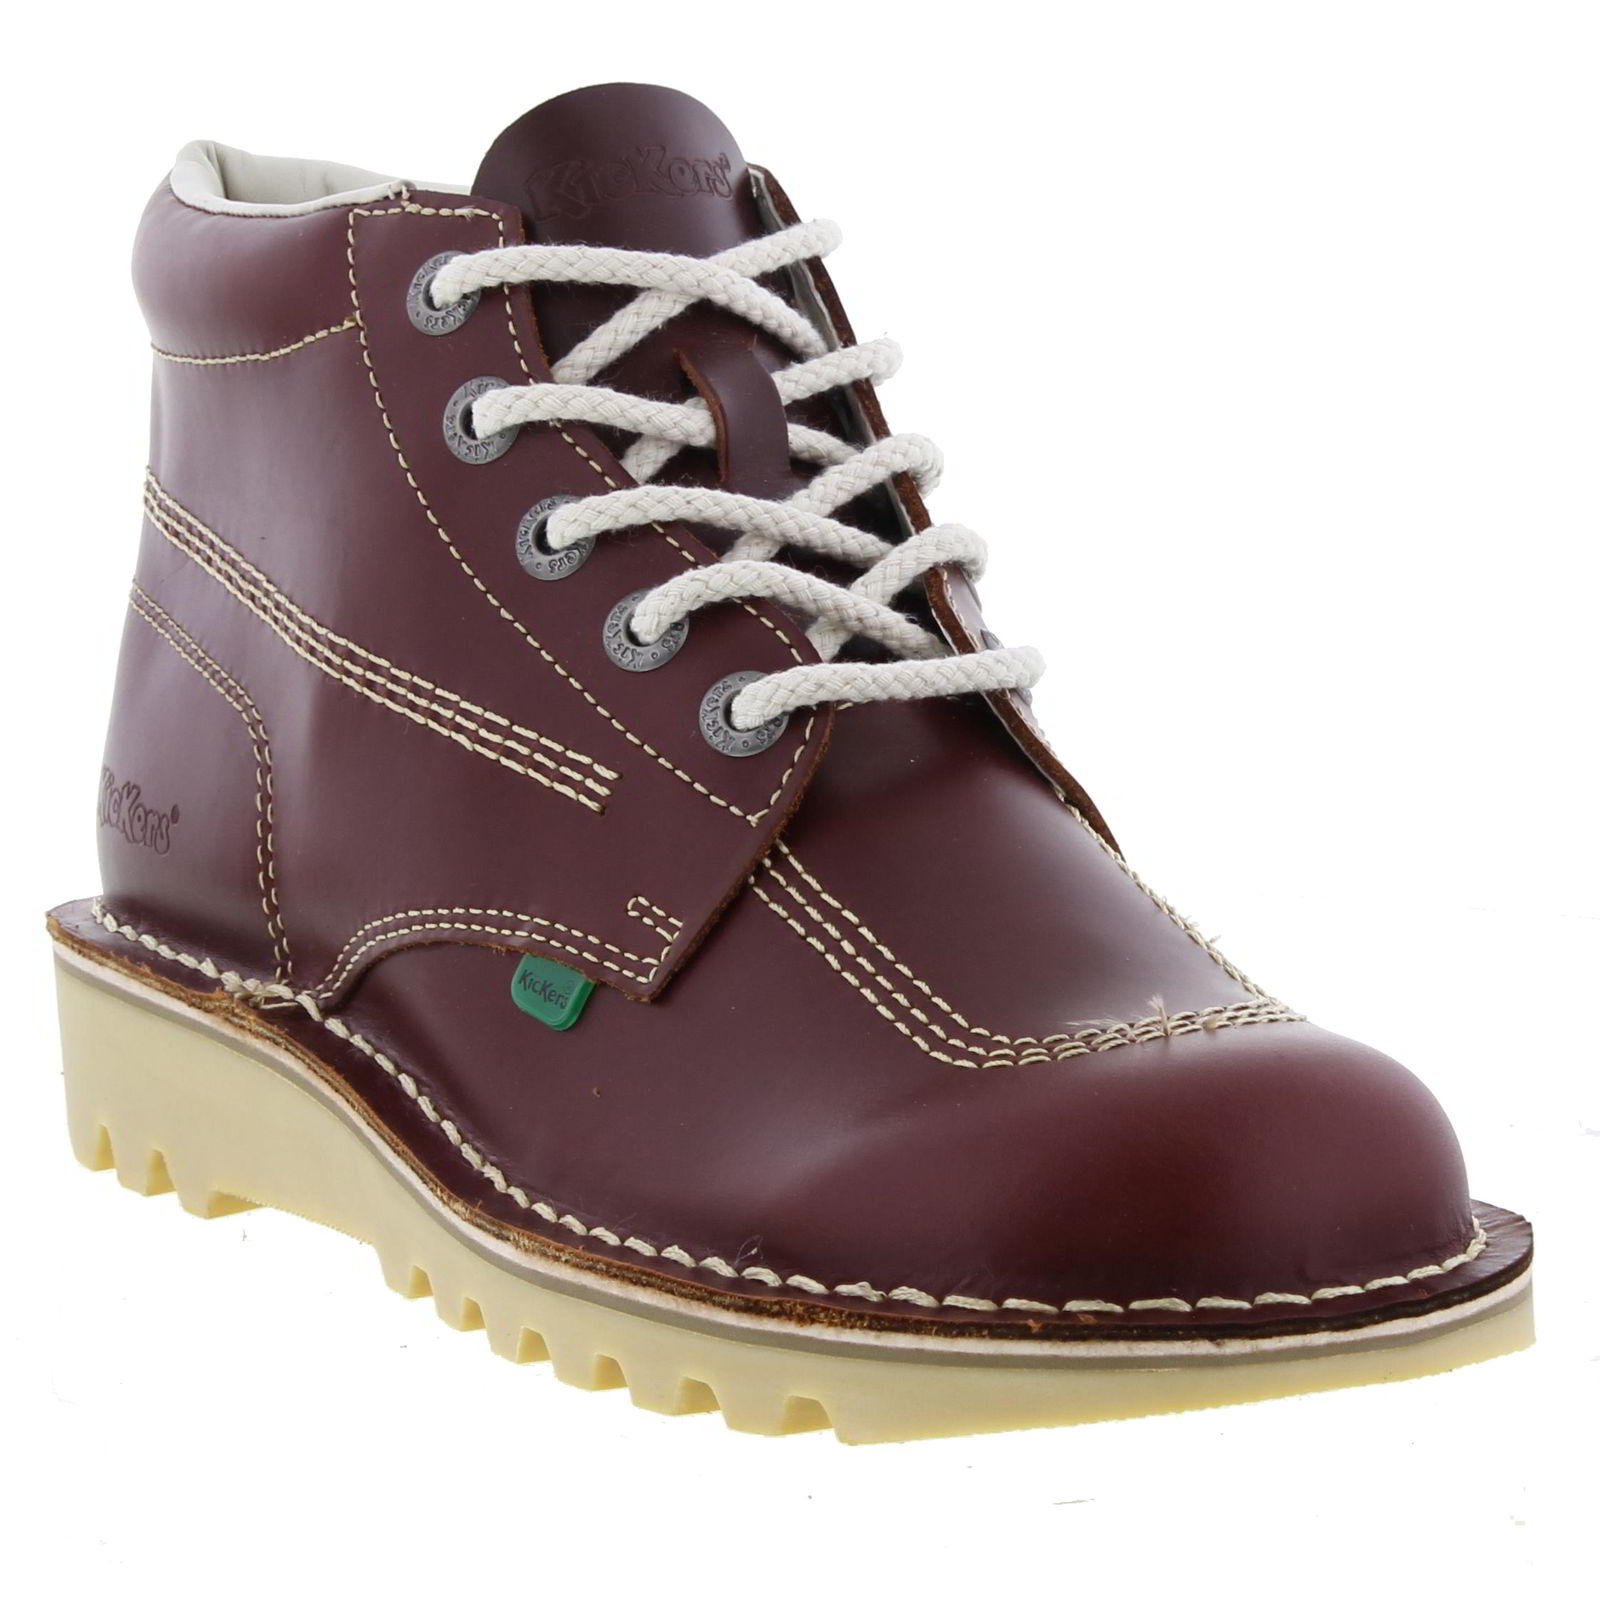 4ef13469 Overall the Kickers Kick Hi is the ultimate classic that will never go out  of fashion.